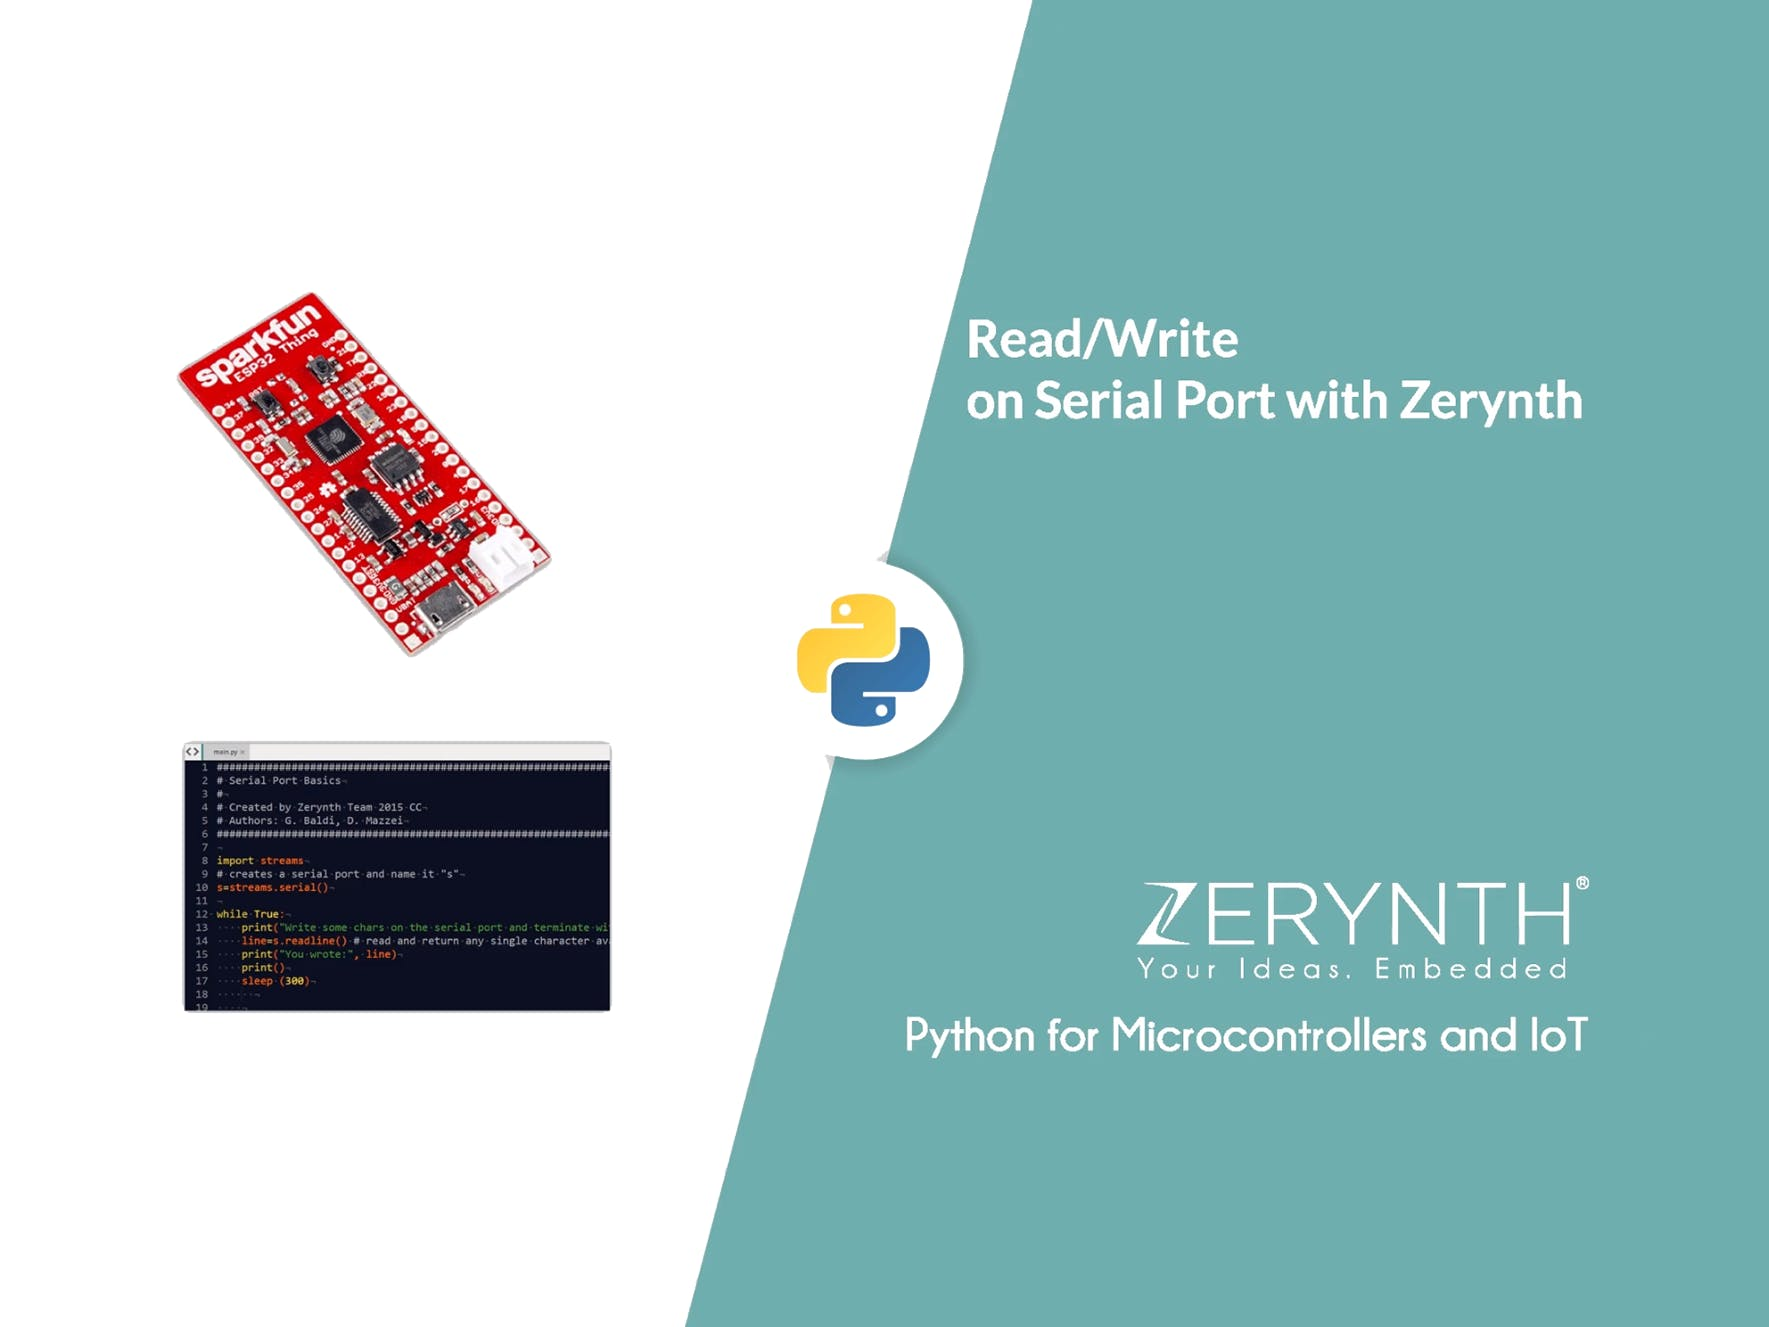 Read and Write on Serial Port with Zerynth